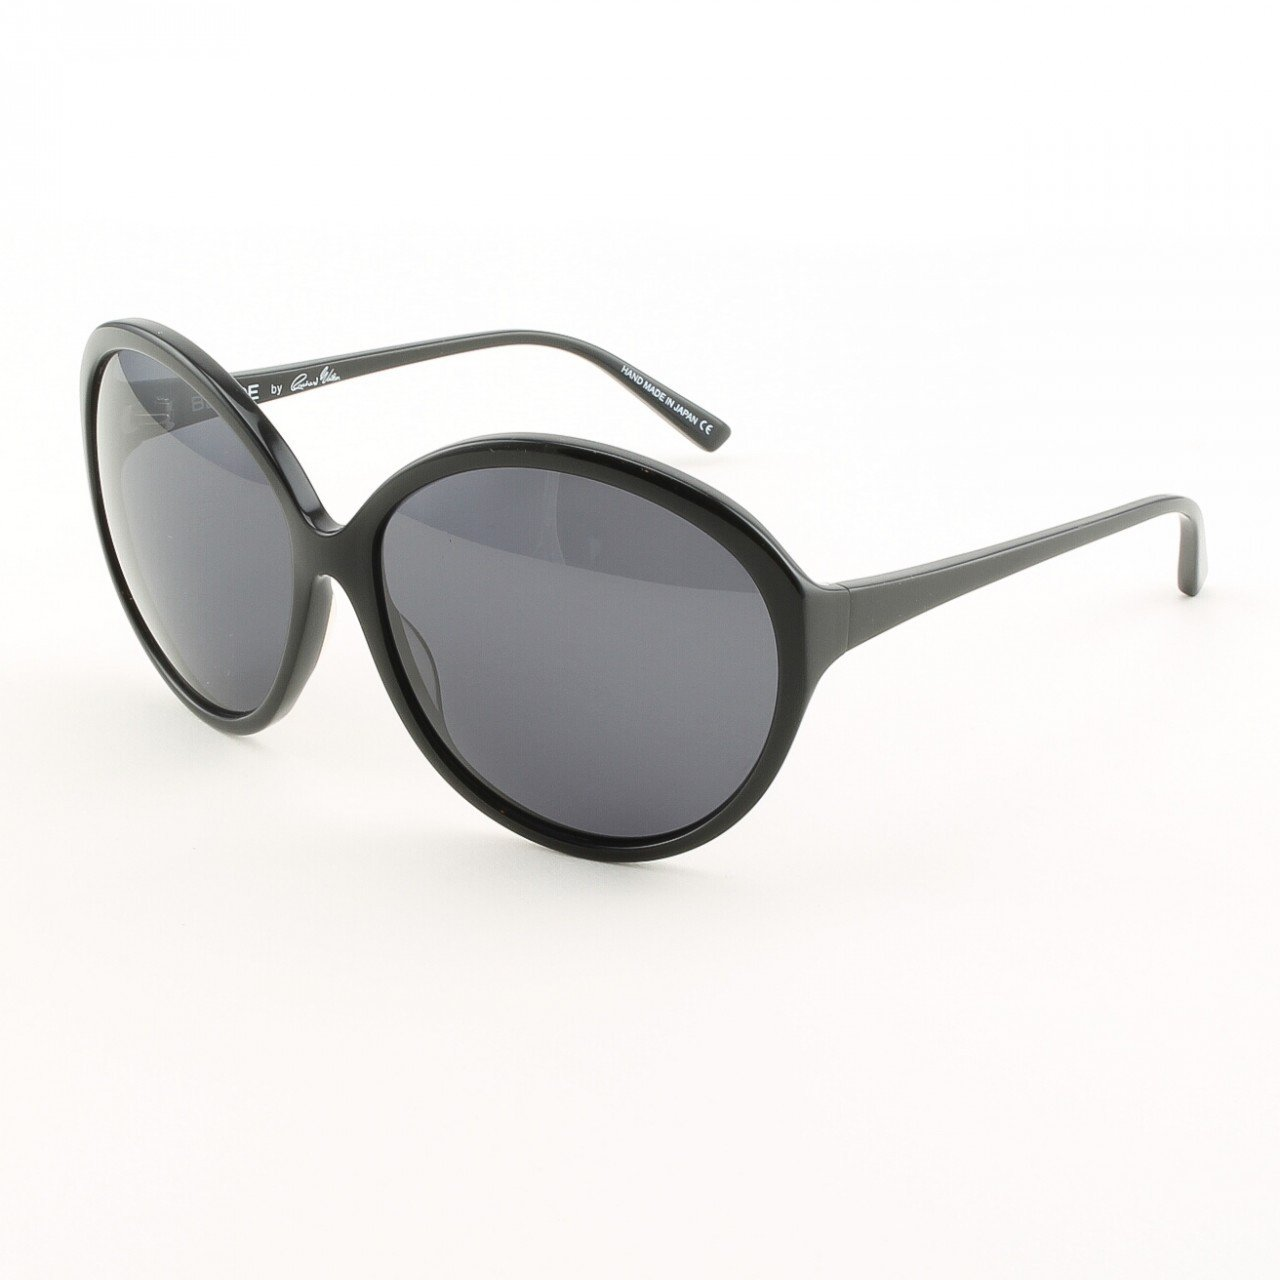 Blinde Way Hot Women's Sunglasses Col. Black with Black Lenses